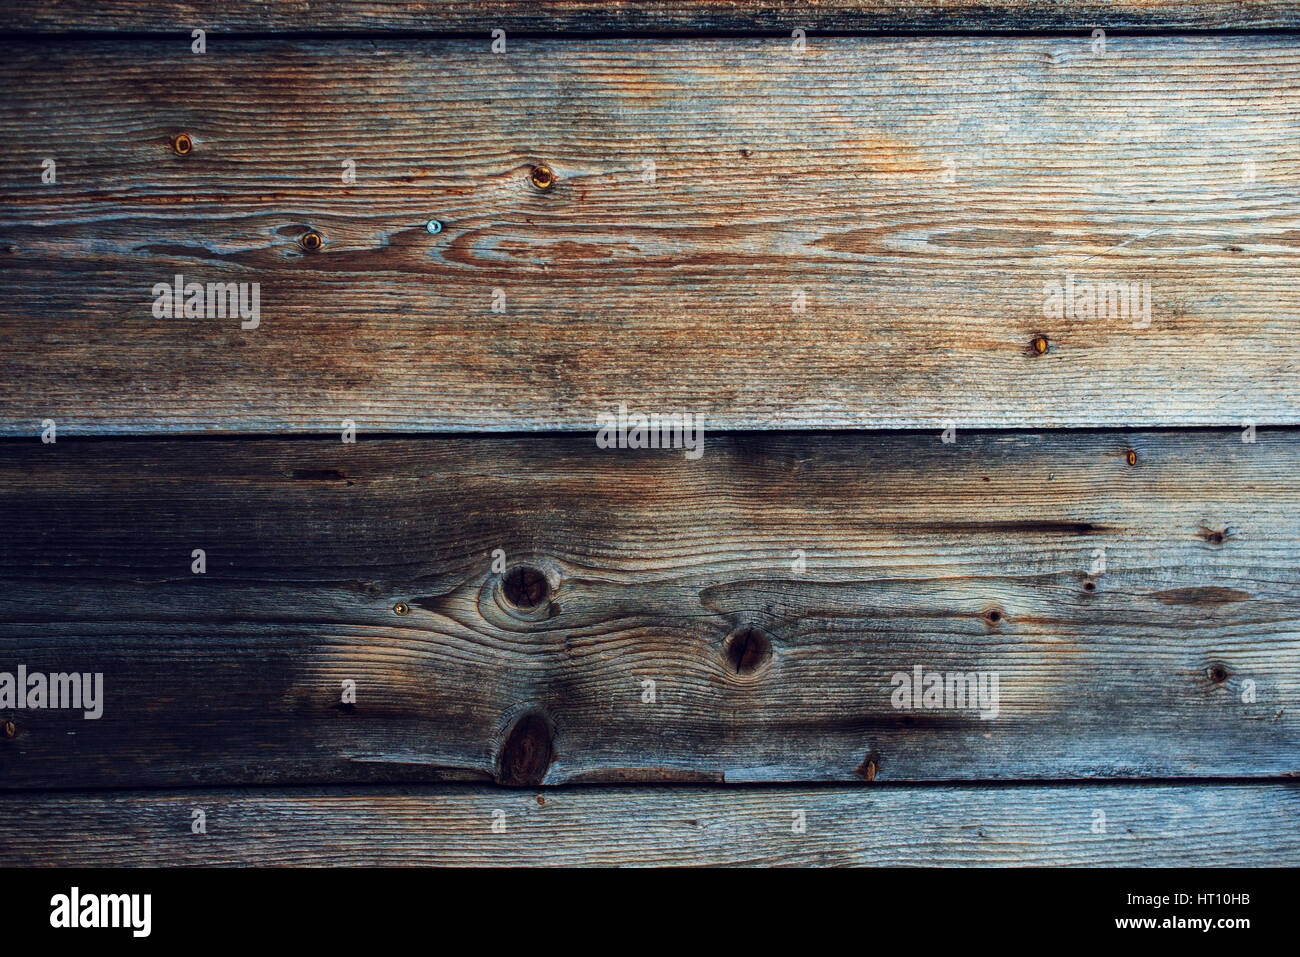 Rustic wooden planks texture, hardwood flooring surface pattern - Stock Image